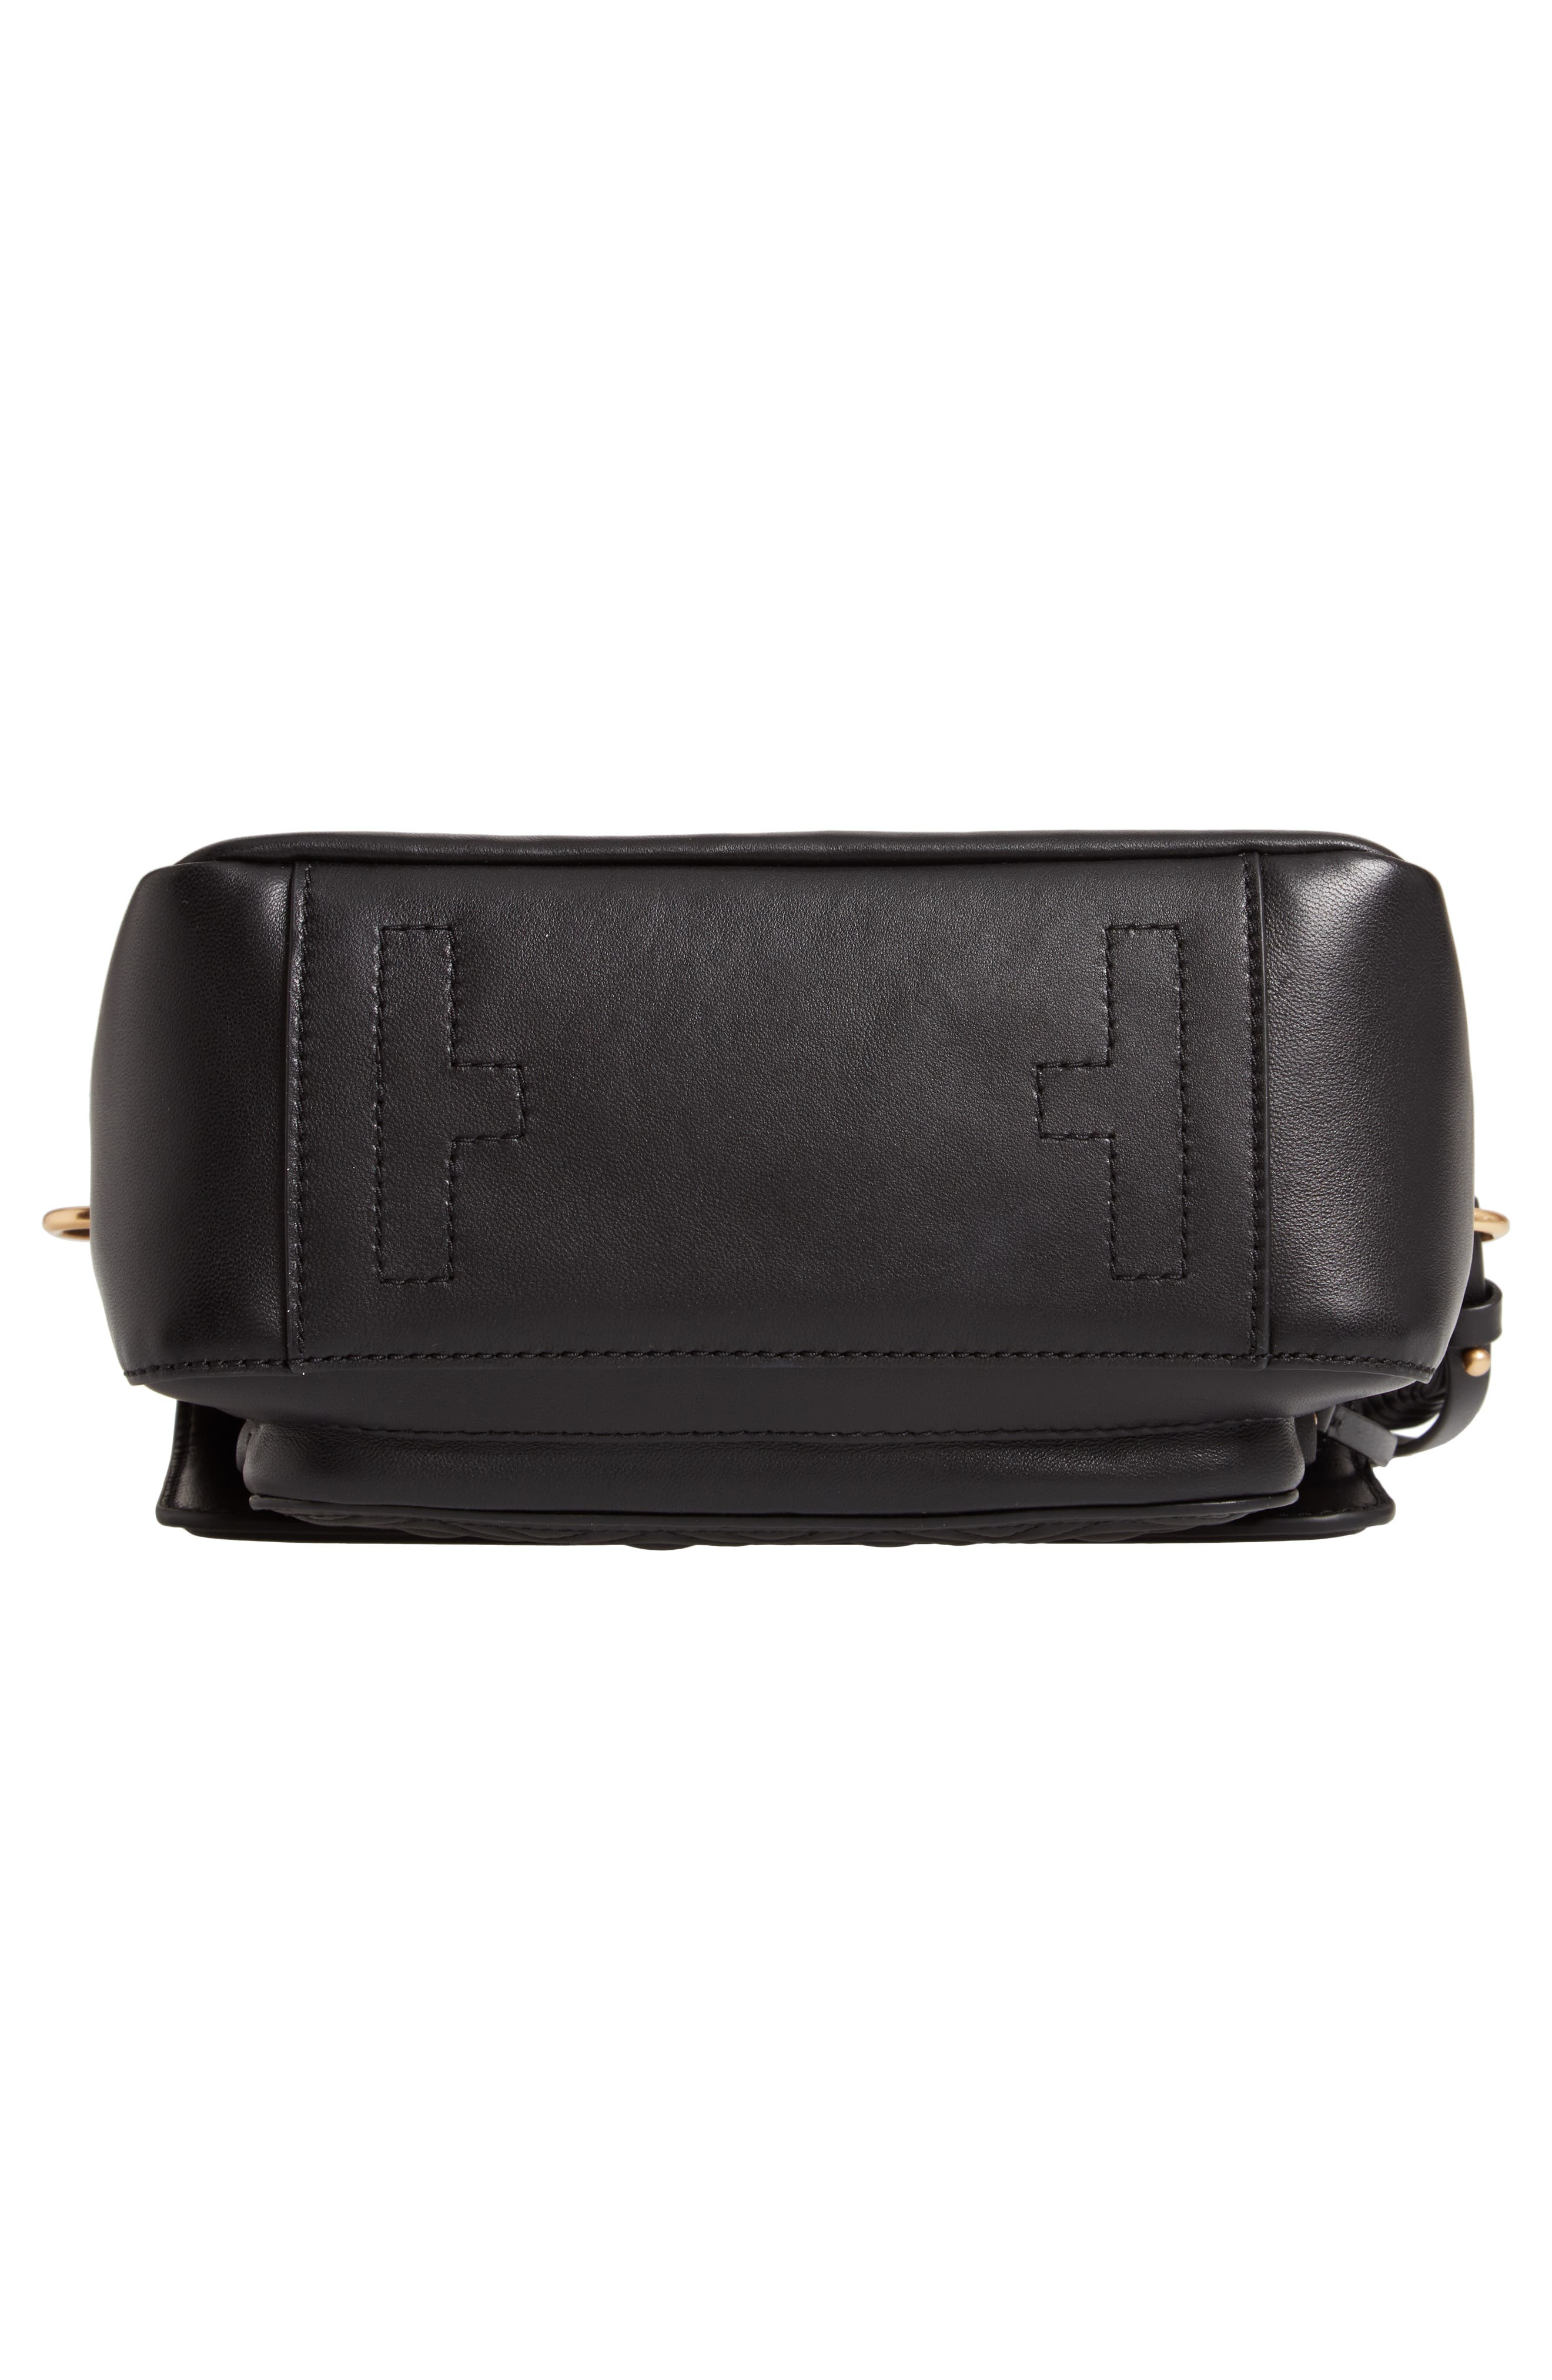 TORY BURCH,                             Fleming Quilted Leather Top Handle Satchel,                             Alternate thumbnail 6, color,                             BLACK